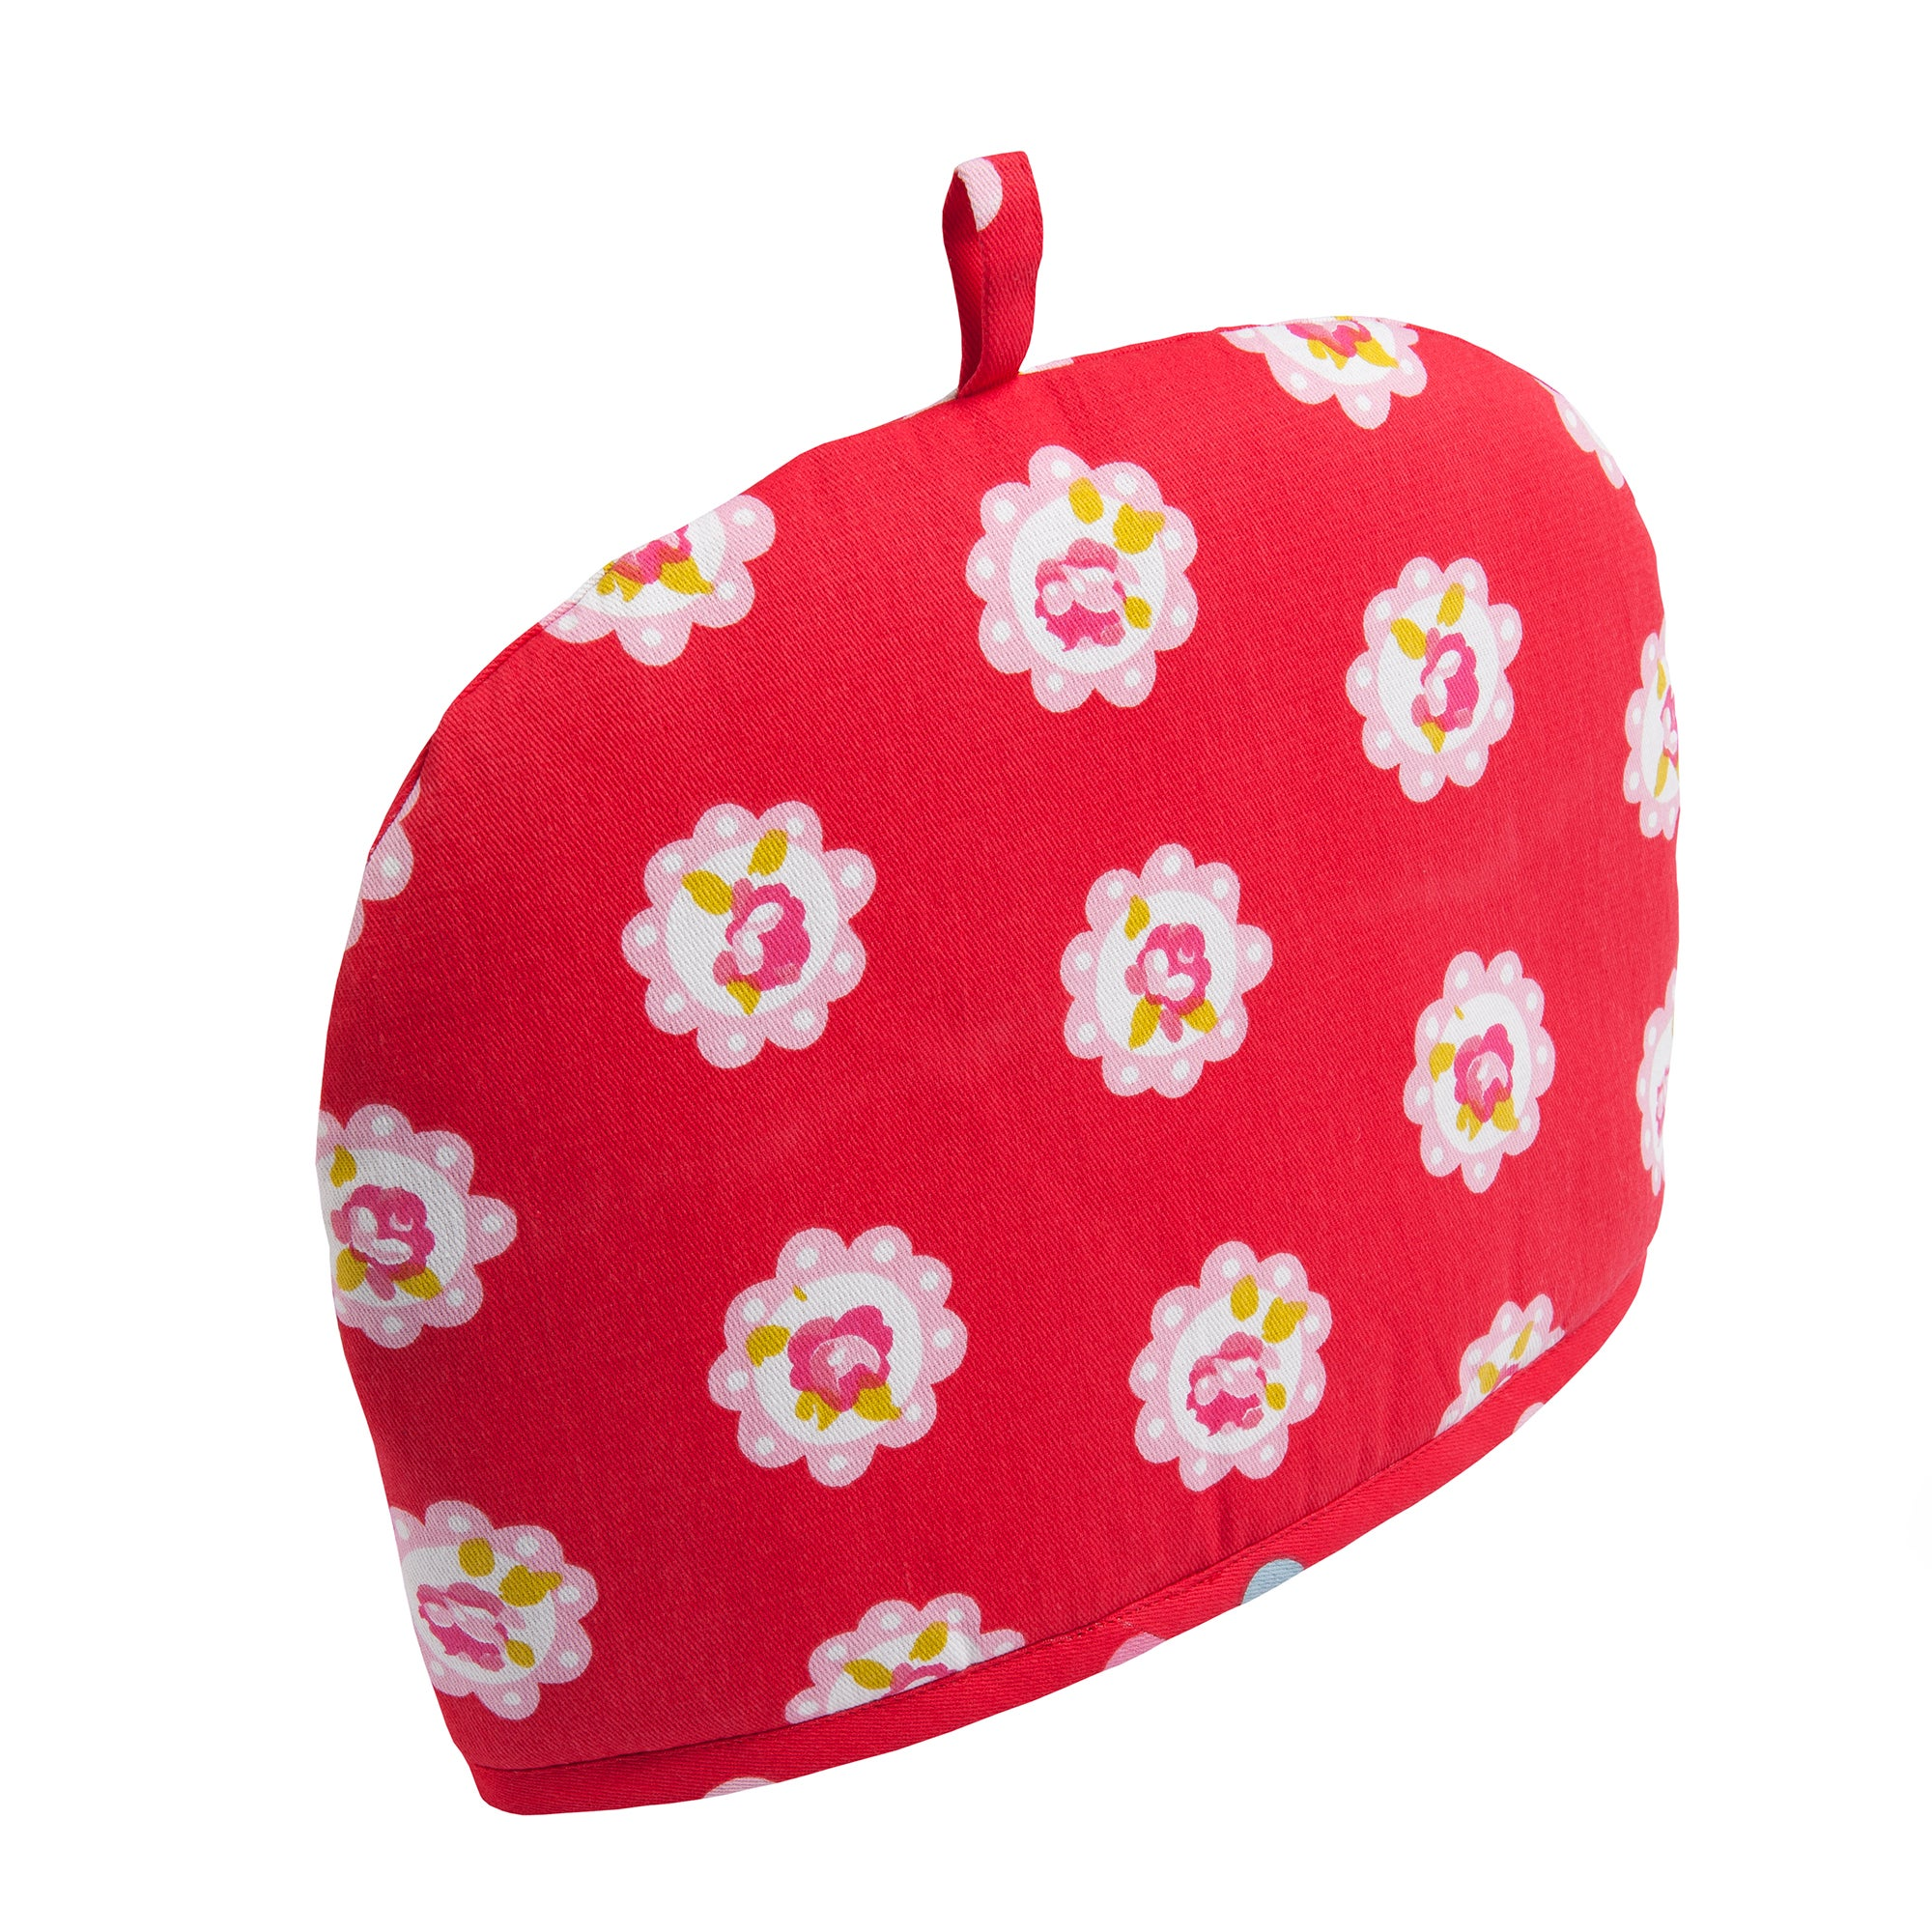 Rose and Ellis Allexton Collection Tea Cosy